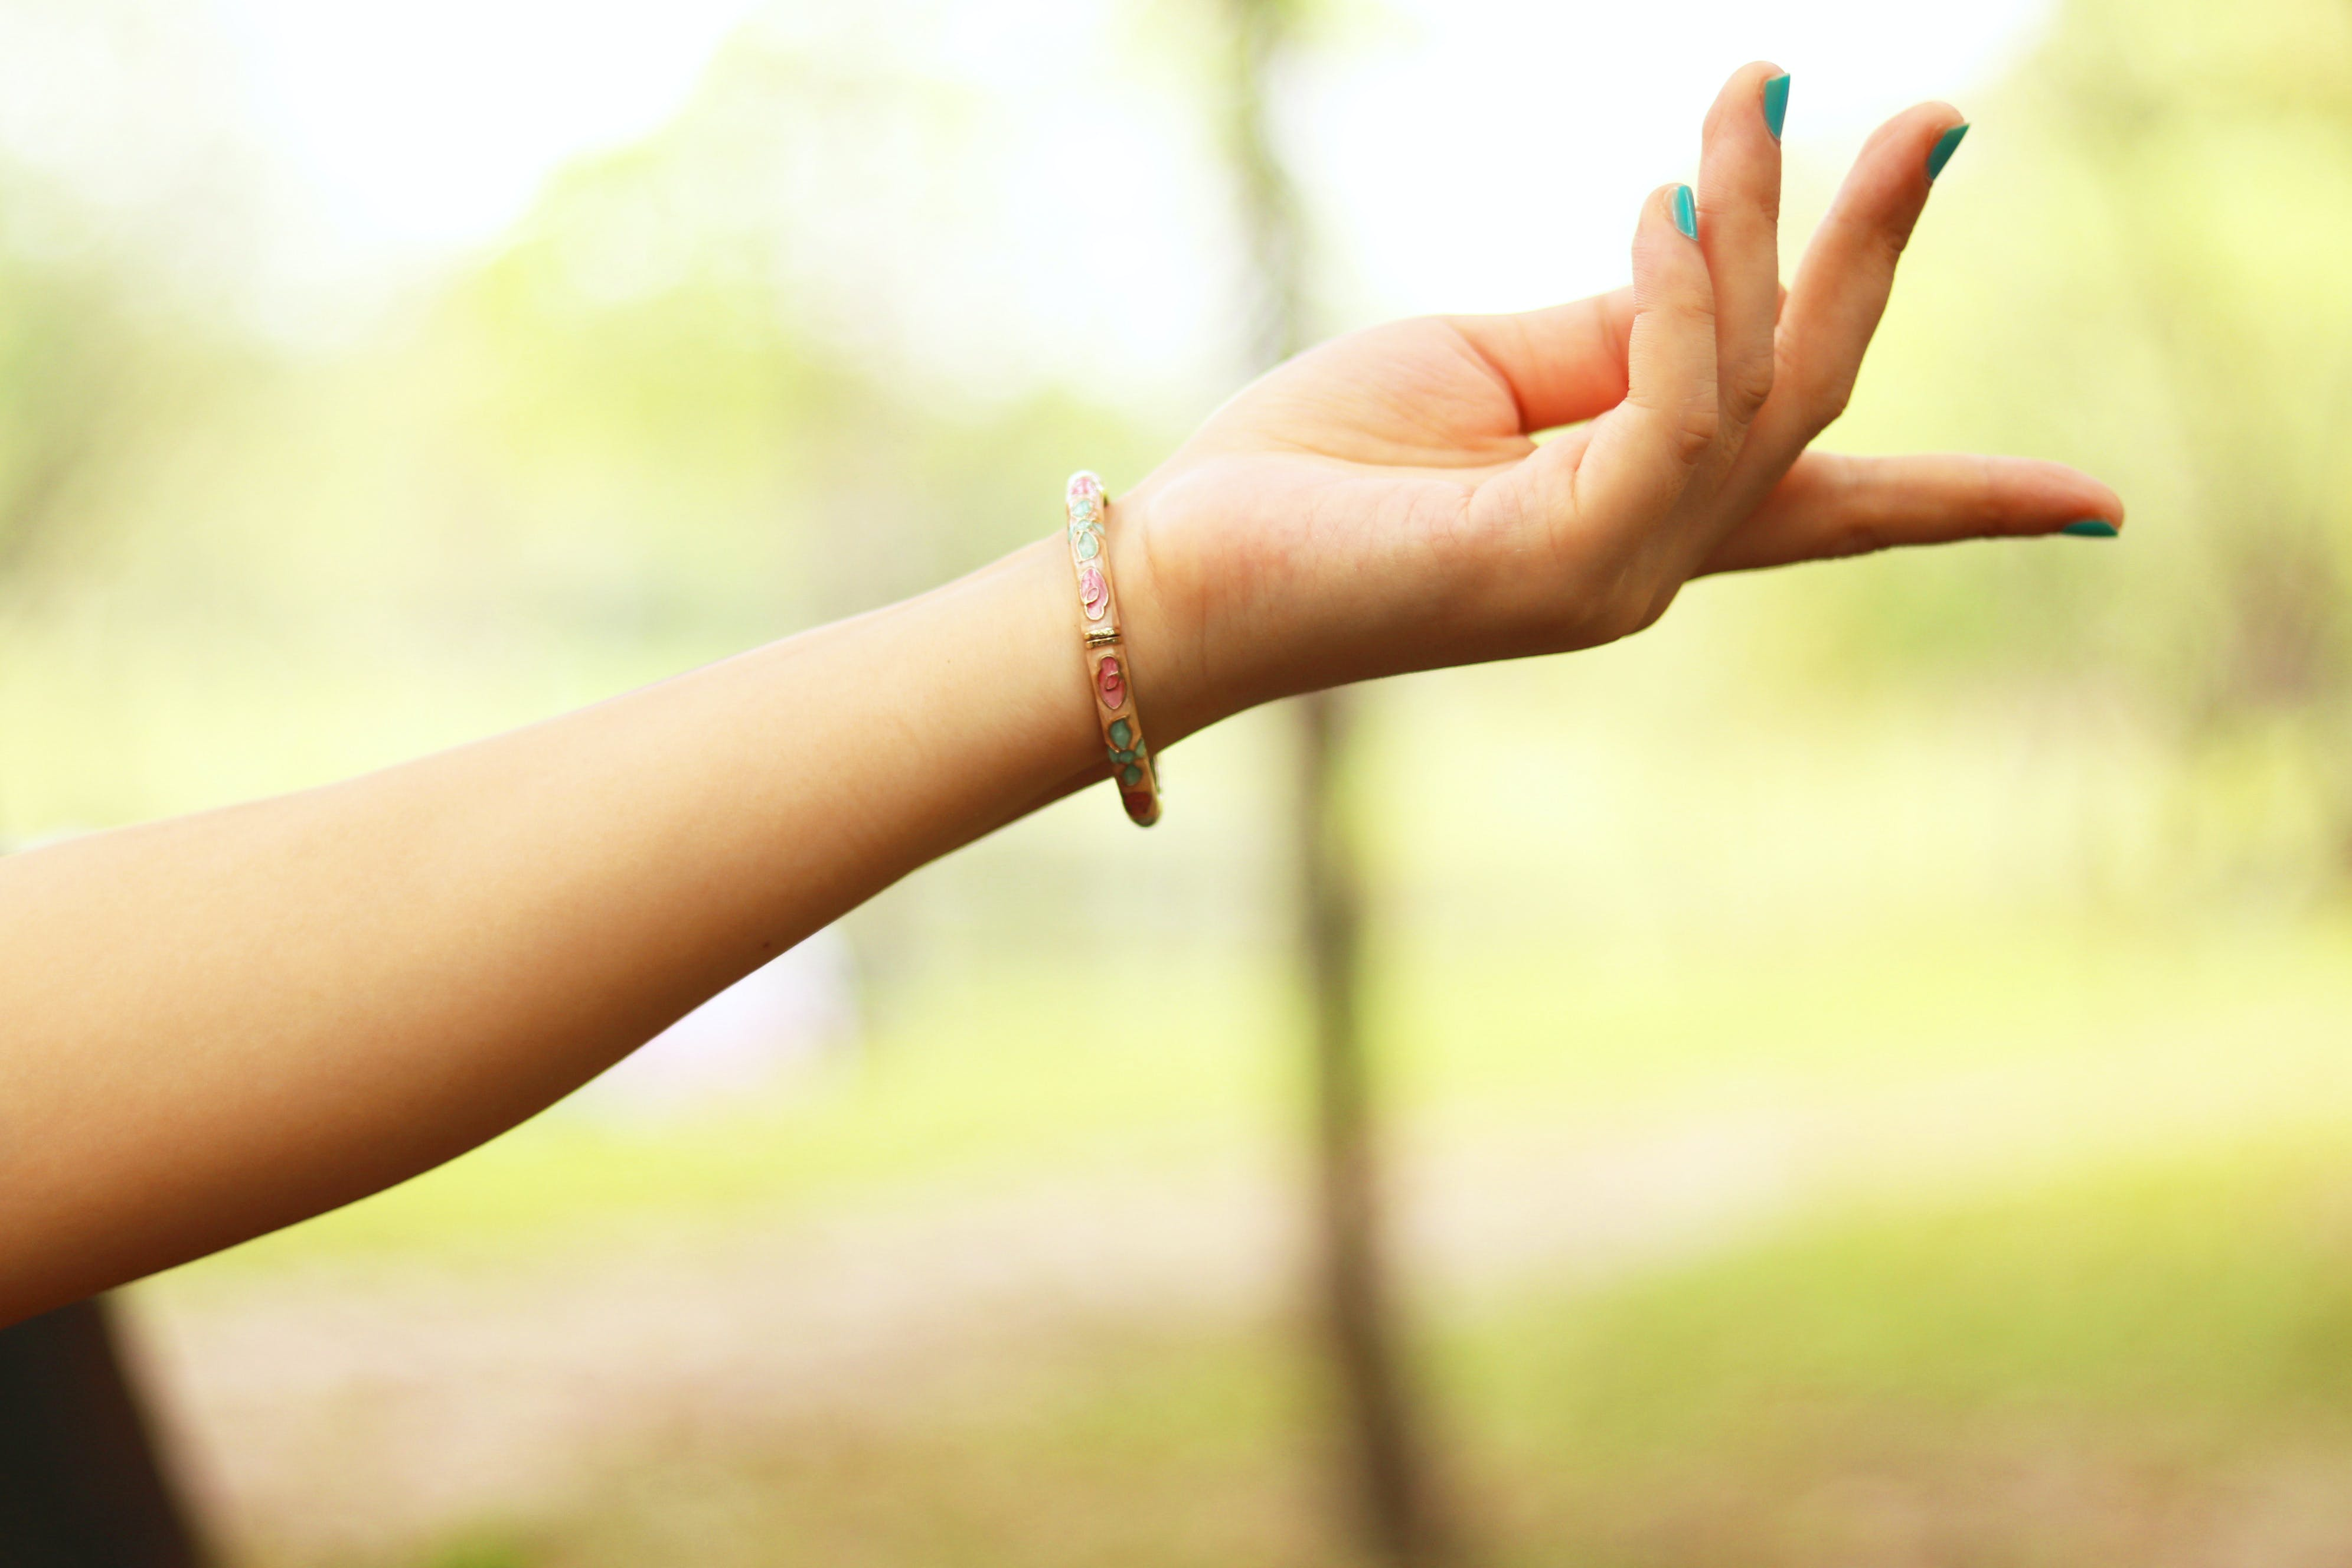 Close-Up Photography of Girl's Left Hand Wearing Bracelet